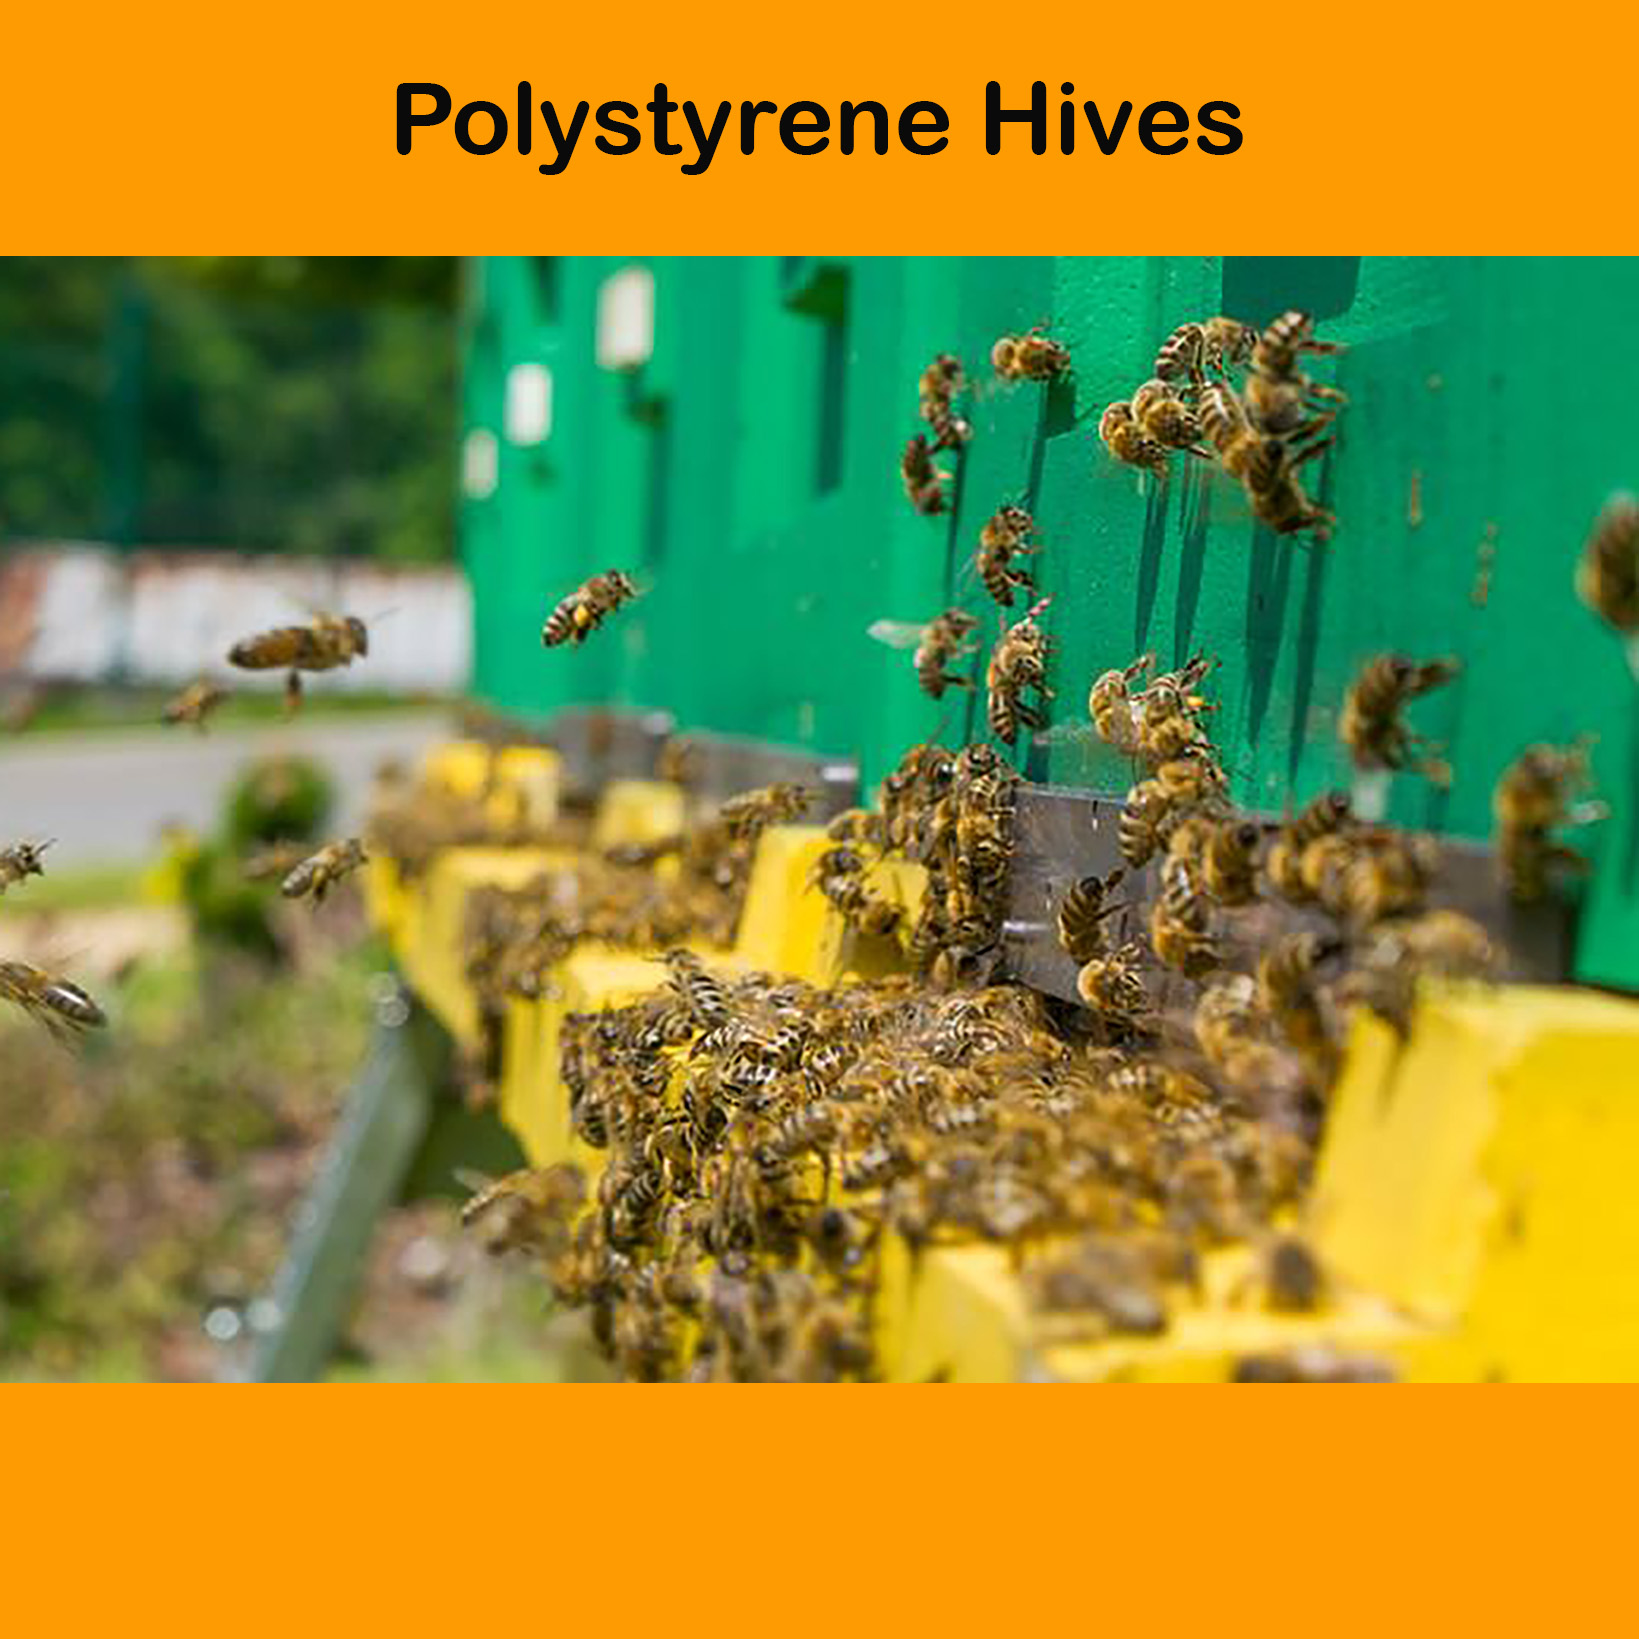 Polystyrene Hives Version 2 .jpg